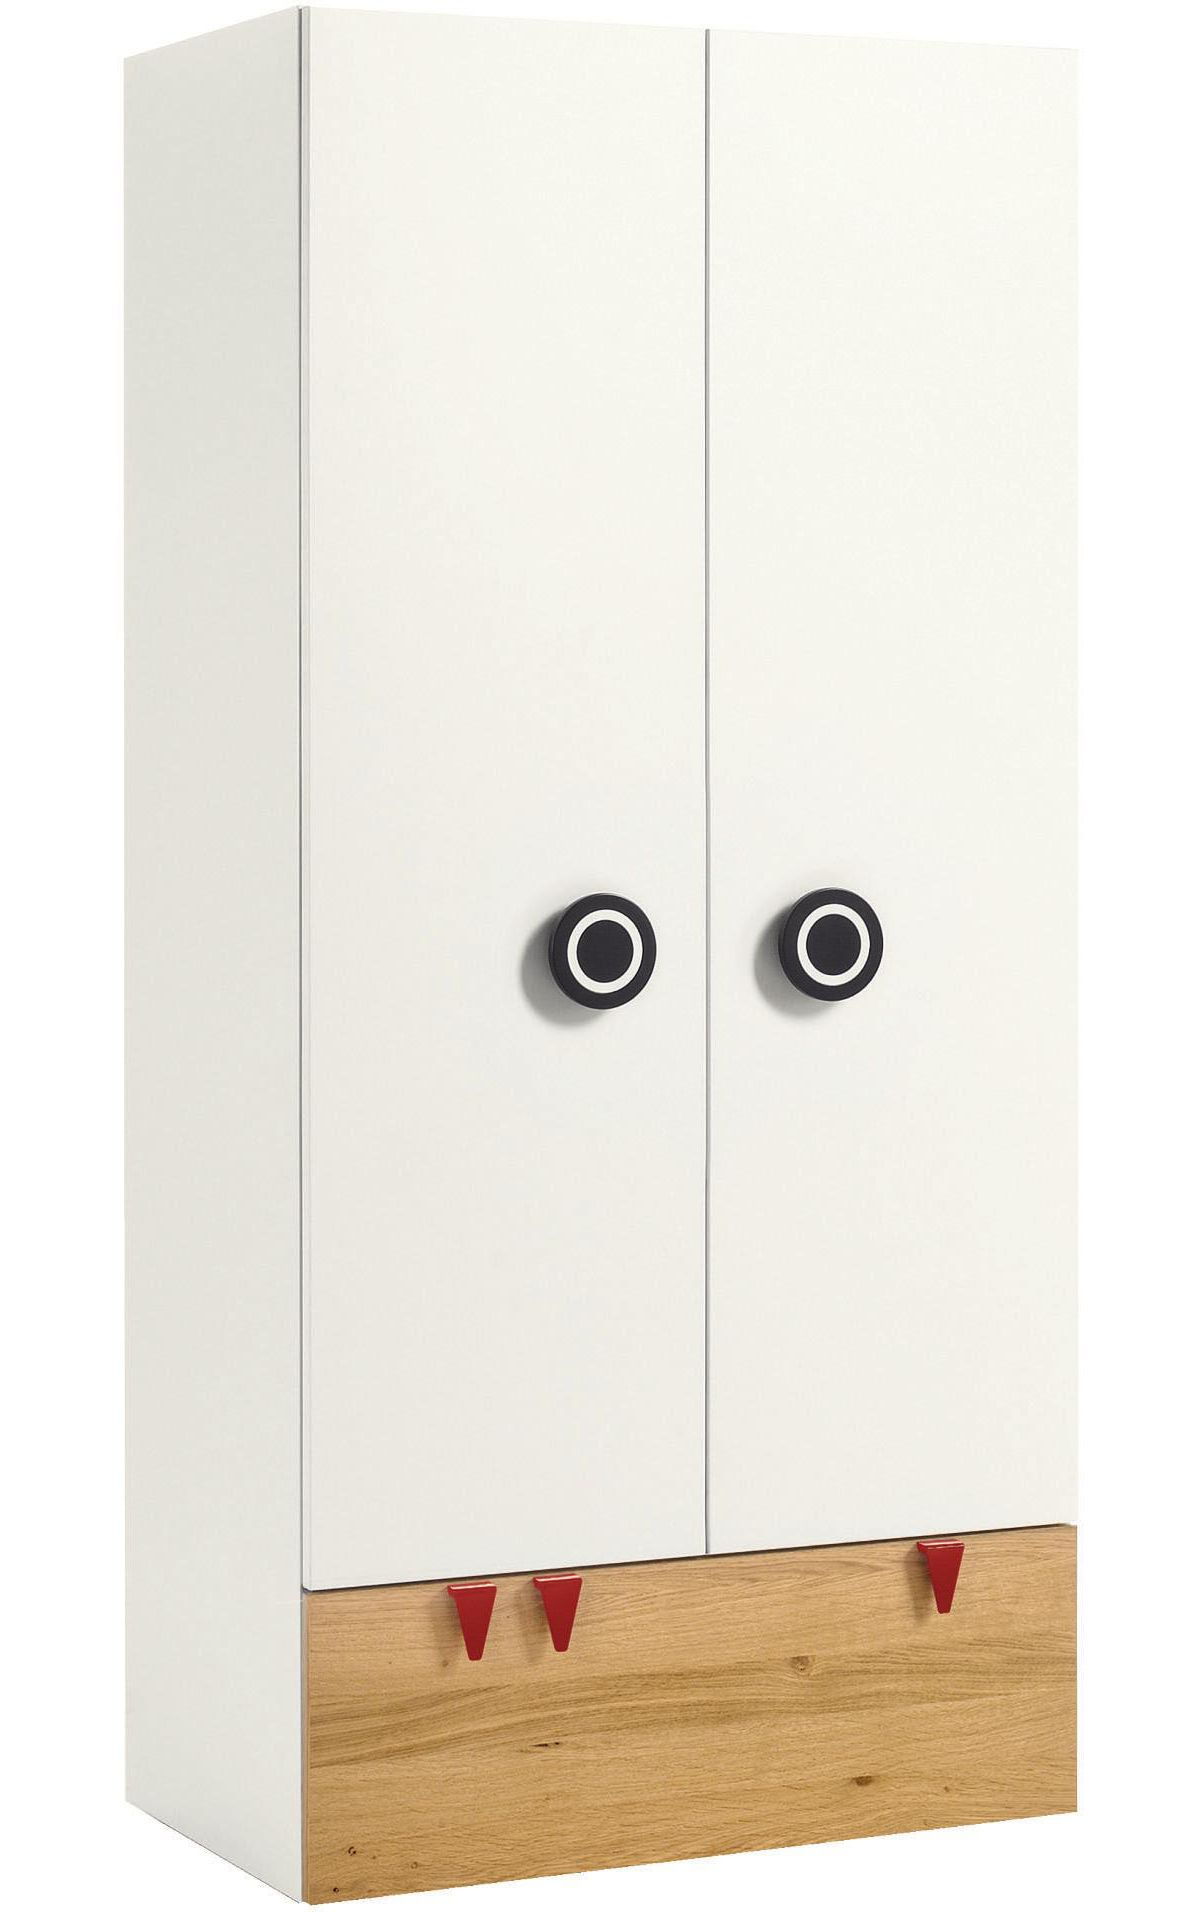 now! by hülsta Kleiderschrank »now! minimo« mit...